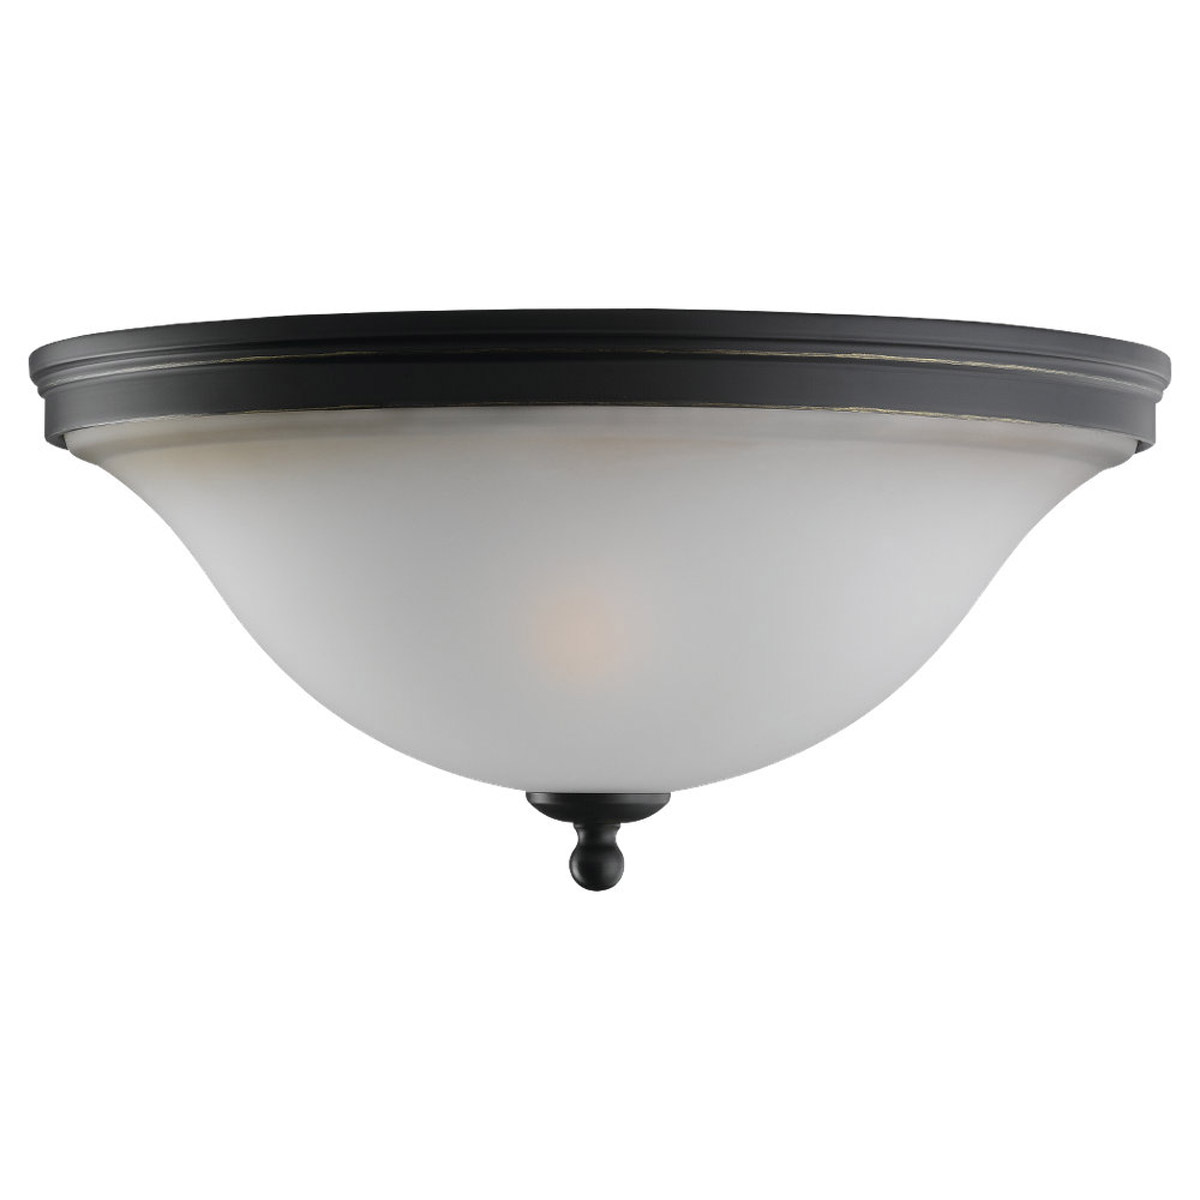 Sea Gull Lighting Gladstone 2 Light Flush Mount in Heirloom Bronze 75850-782